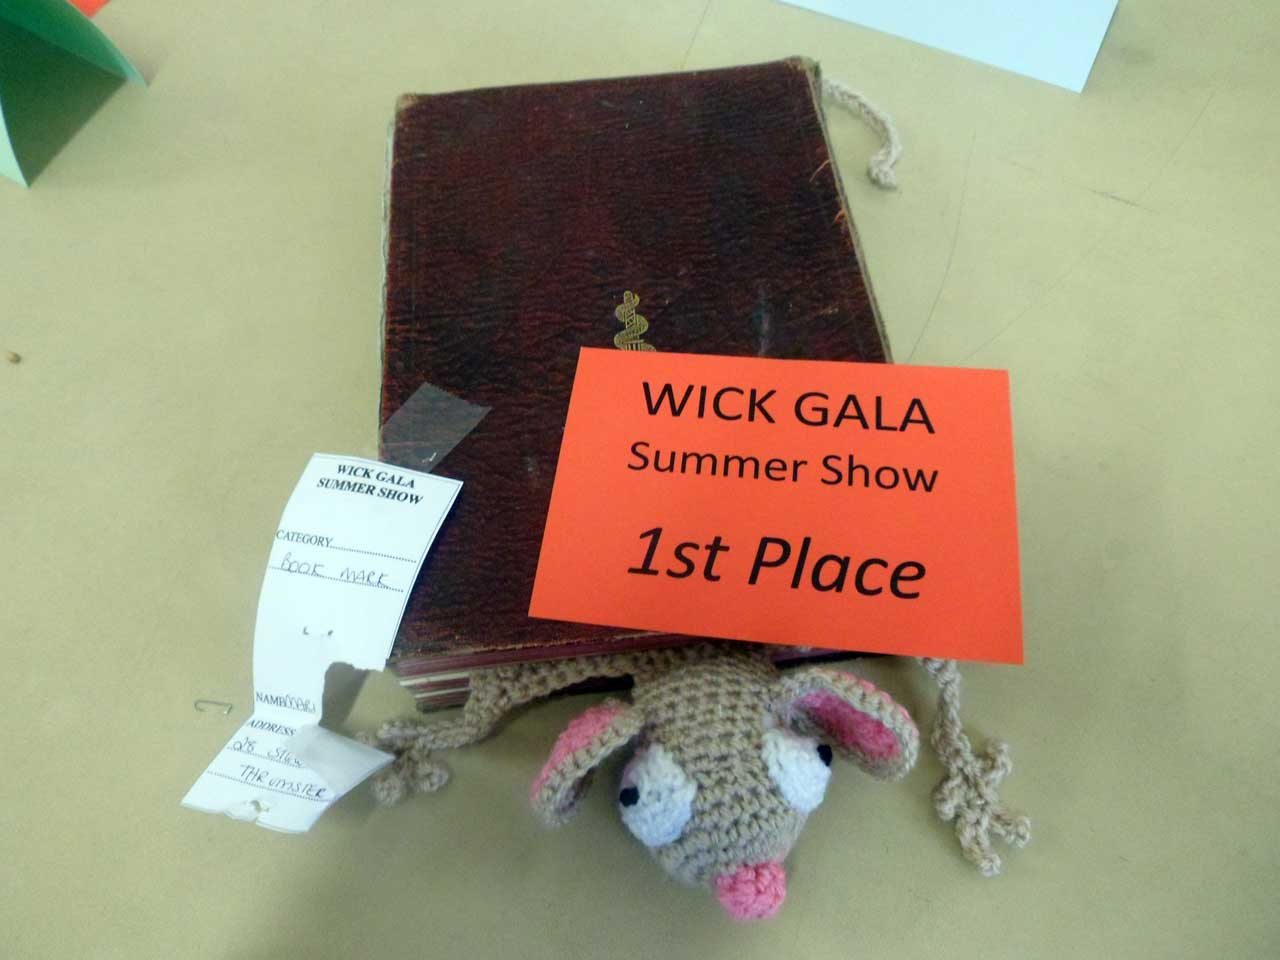 Photo: Wick Gala 2017 Summer Show